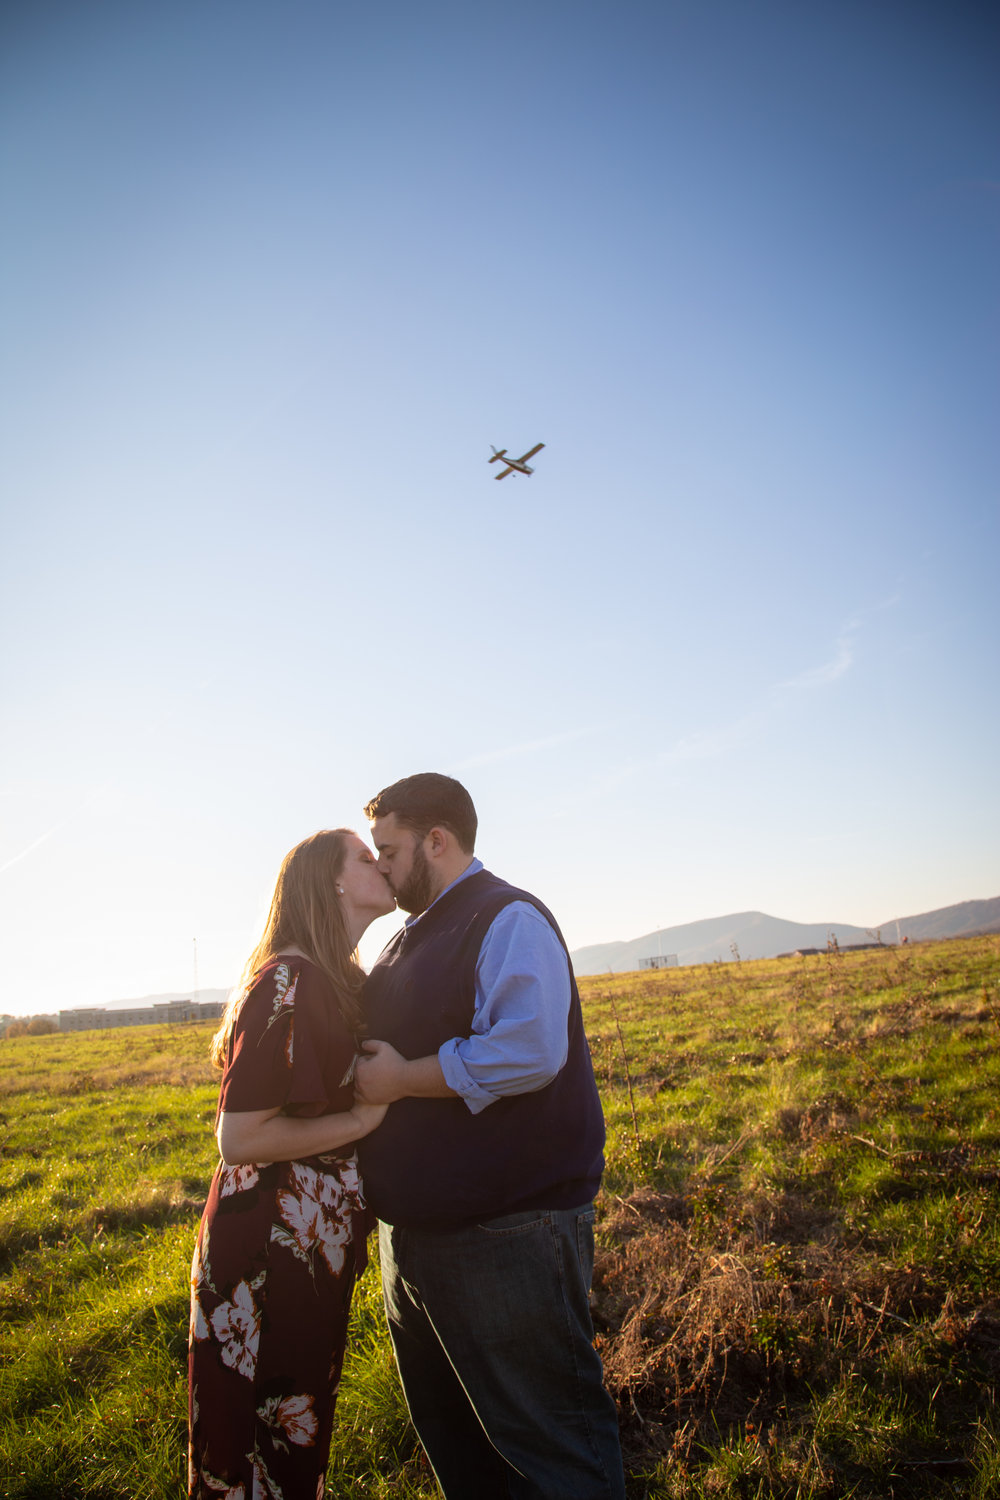 Sunset-Roanoke-shakers-field-flare-airport-love-together-virginia-photography-shoot-together-wider-airplane